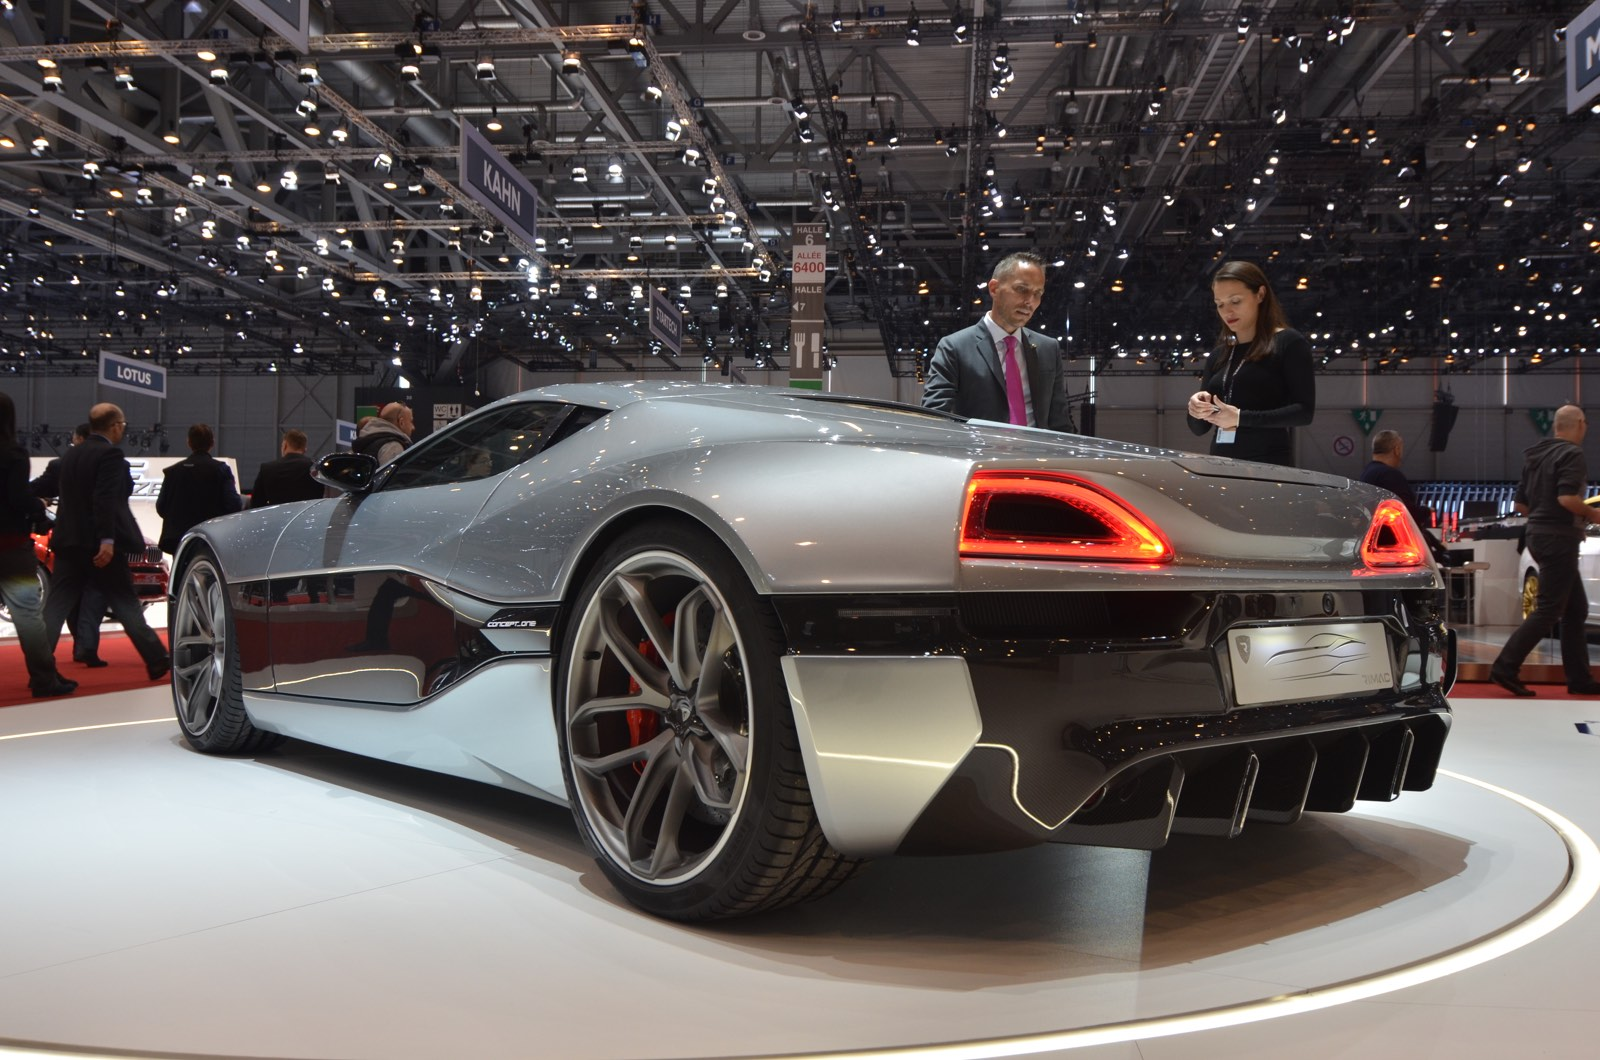 lexus battery with Geneva 2016 Rimac Concept One on Watch in addition 2018 Lexus Ls 500h First Look Review in addition Top 10 Chinese Rip Off Cars Vs Their Original Designs as well Lexus Is 300h F Sport Auto Road Test Report And Review together with Bmw I8 2016 Hybrid Long Term Test Review.